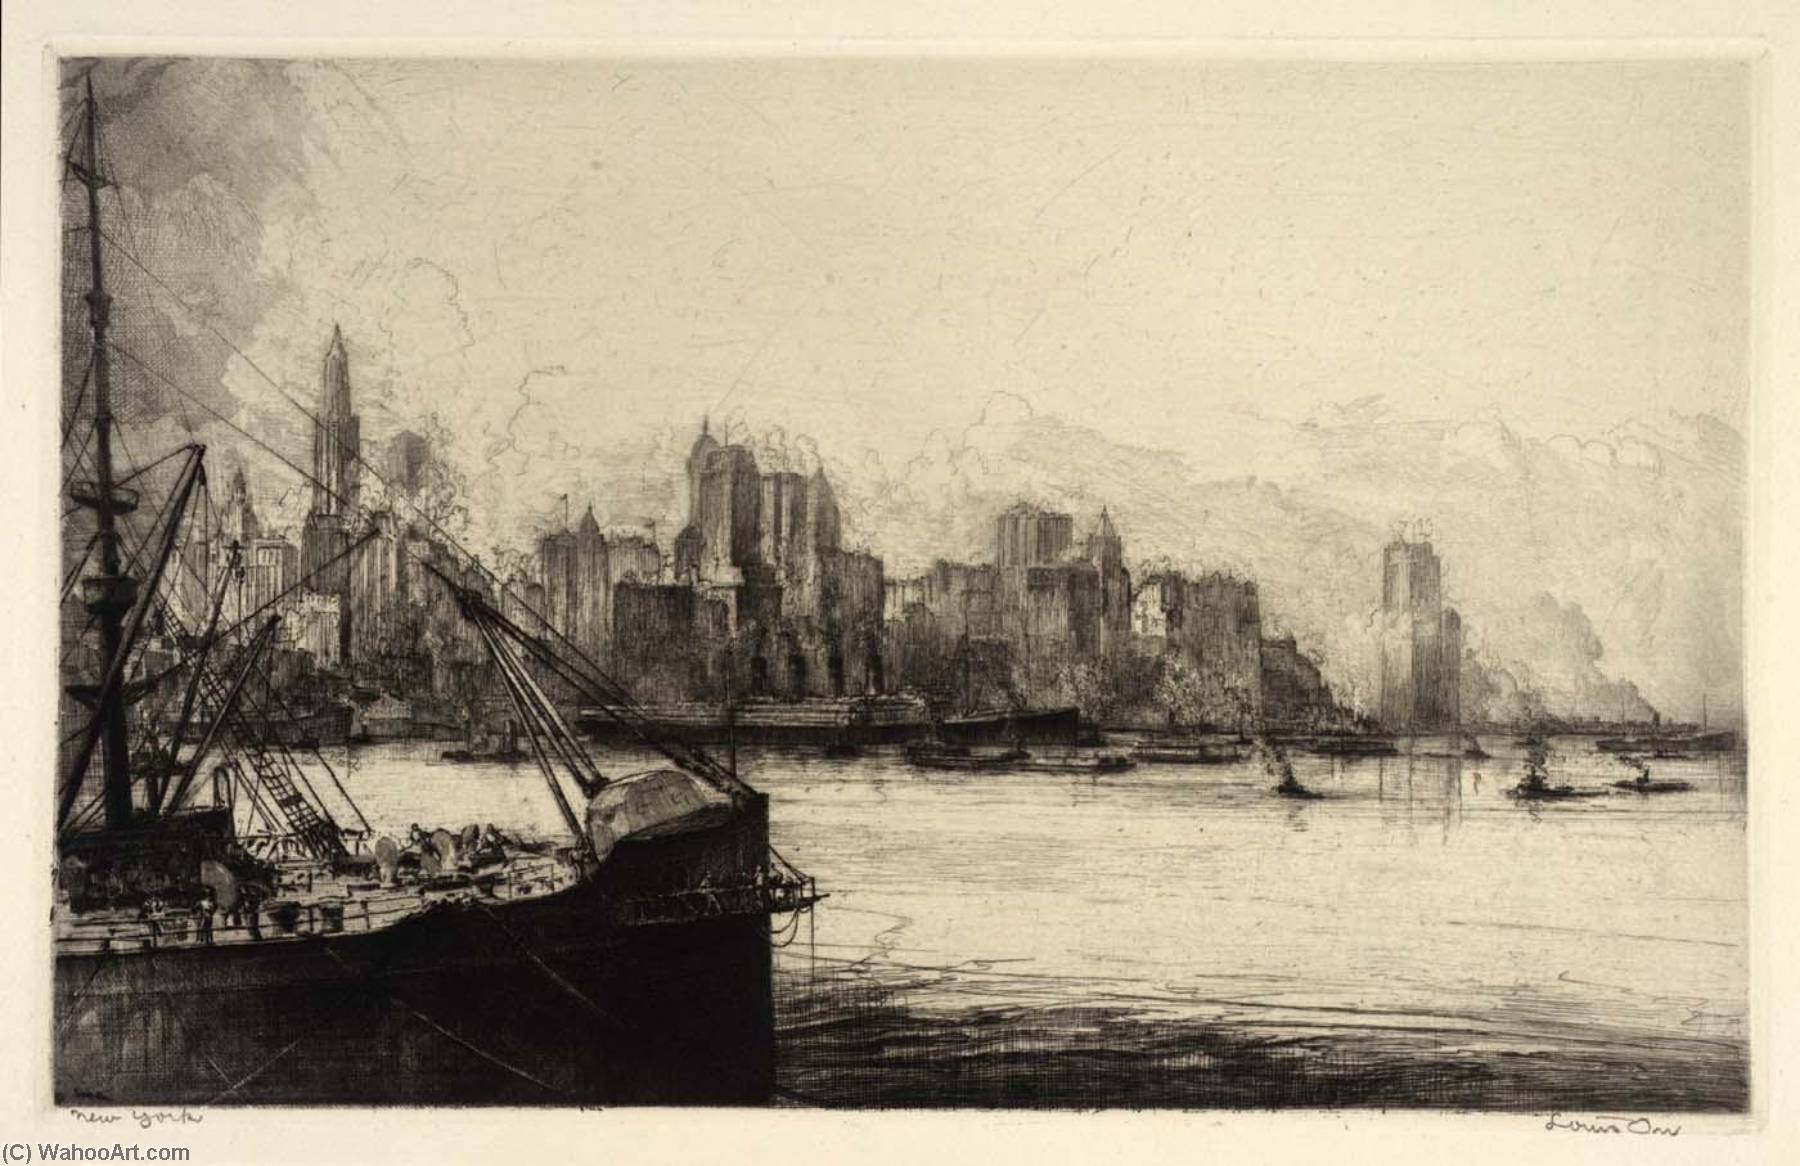 (Ports de lamérique , portefeuille ) new york, eauforte de Louis Orr